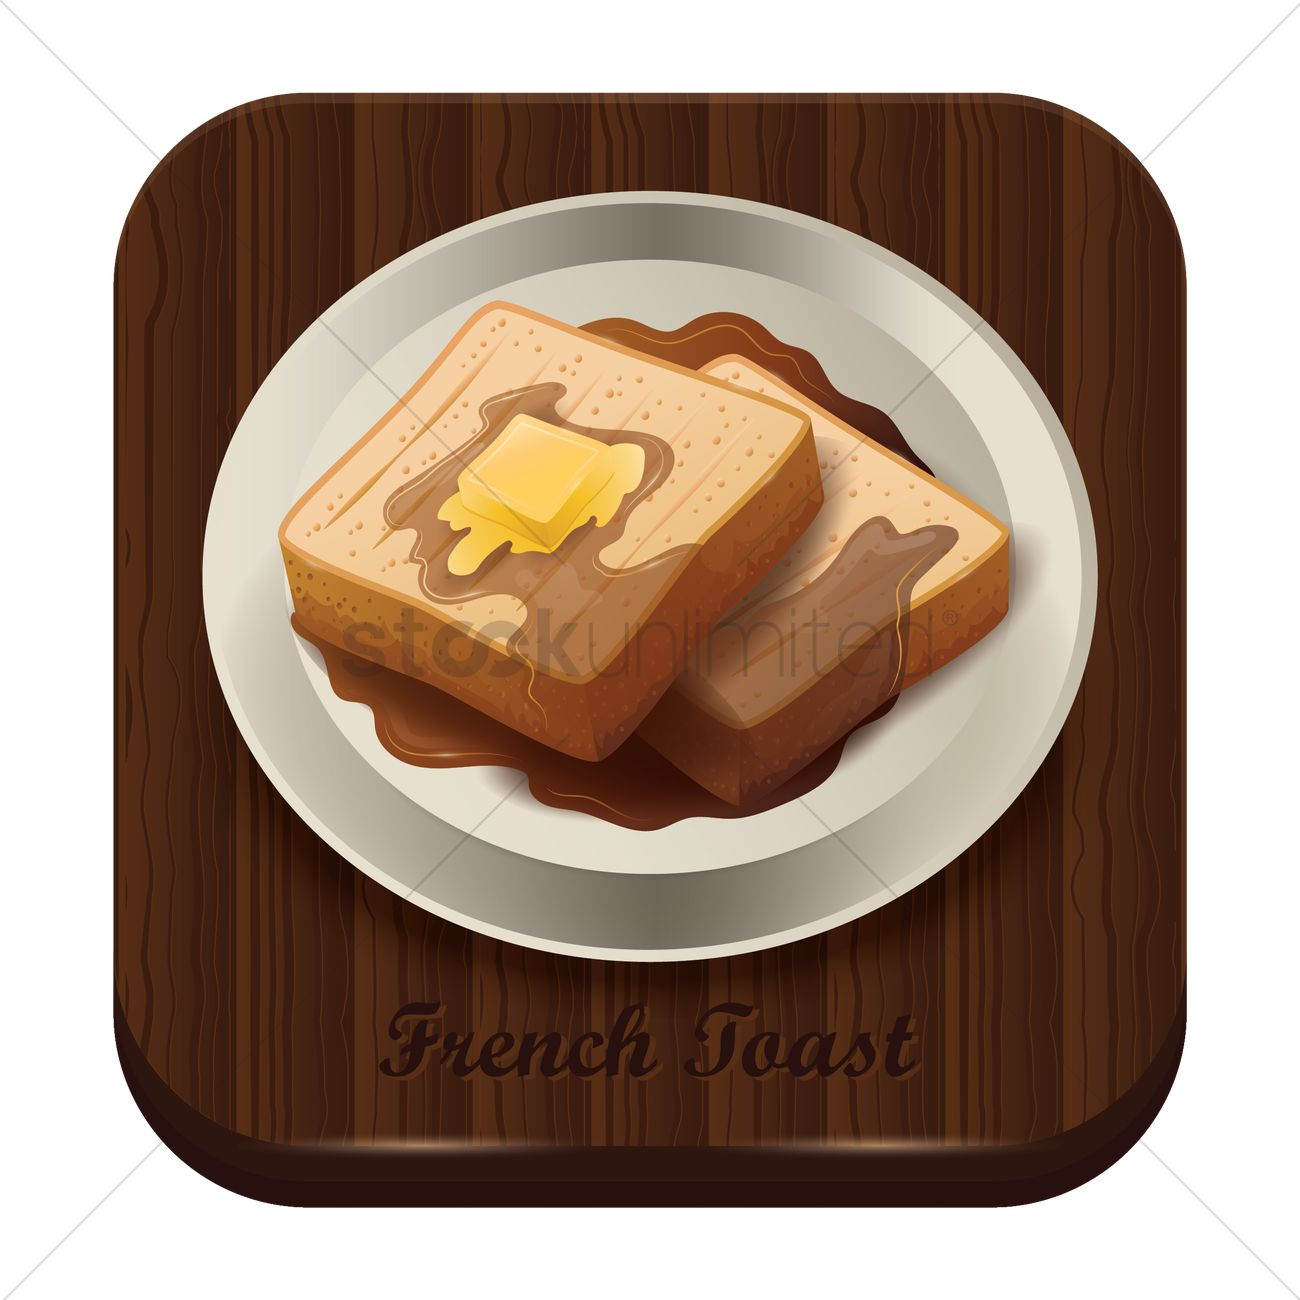 1300x1300 French Toast Vector Image